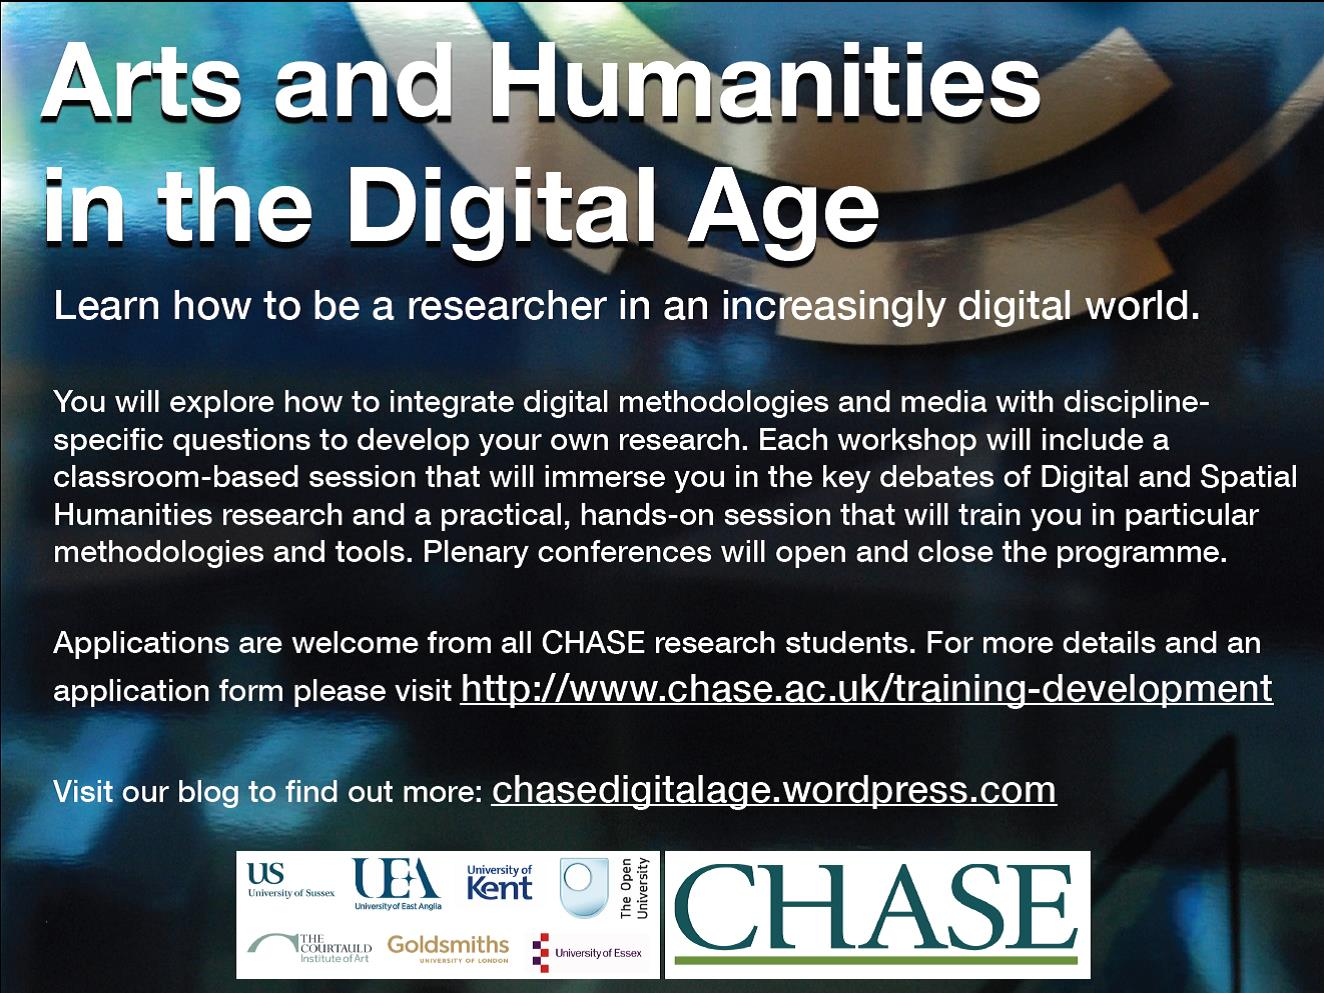 CHASE Arts and Humanities in the Digital Age promotional poster